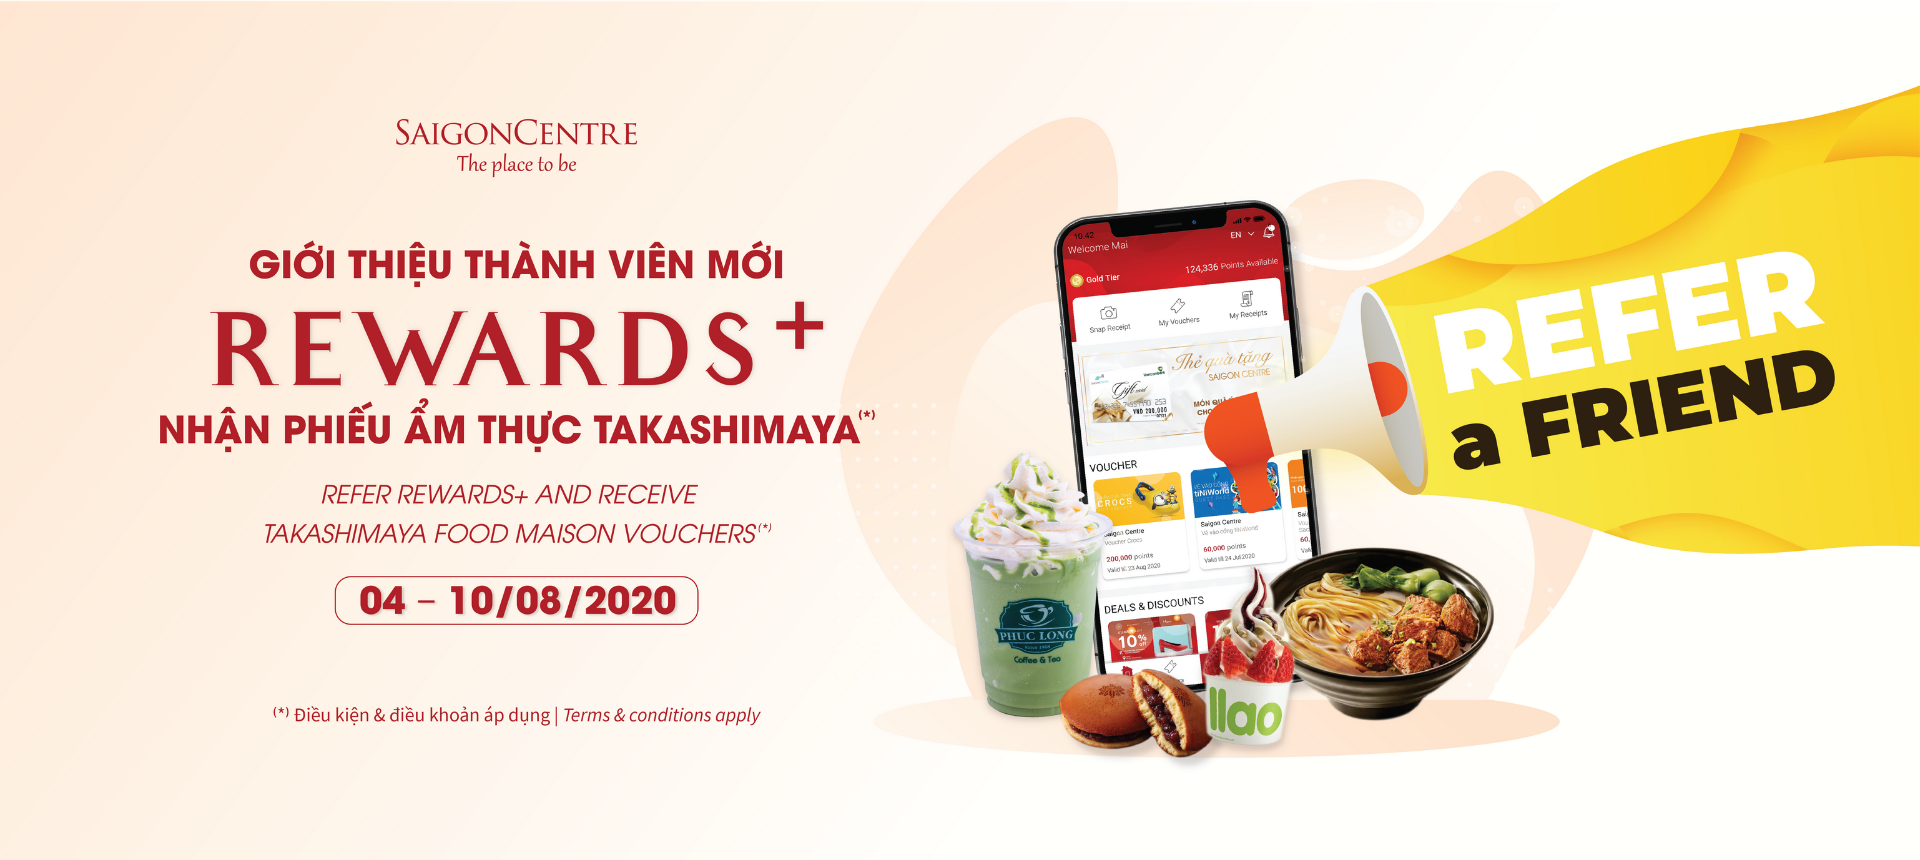 REFER REWARDS+ APP & RECEIVE TAKASHIMAYA FOOD MAISON VOUCHERS